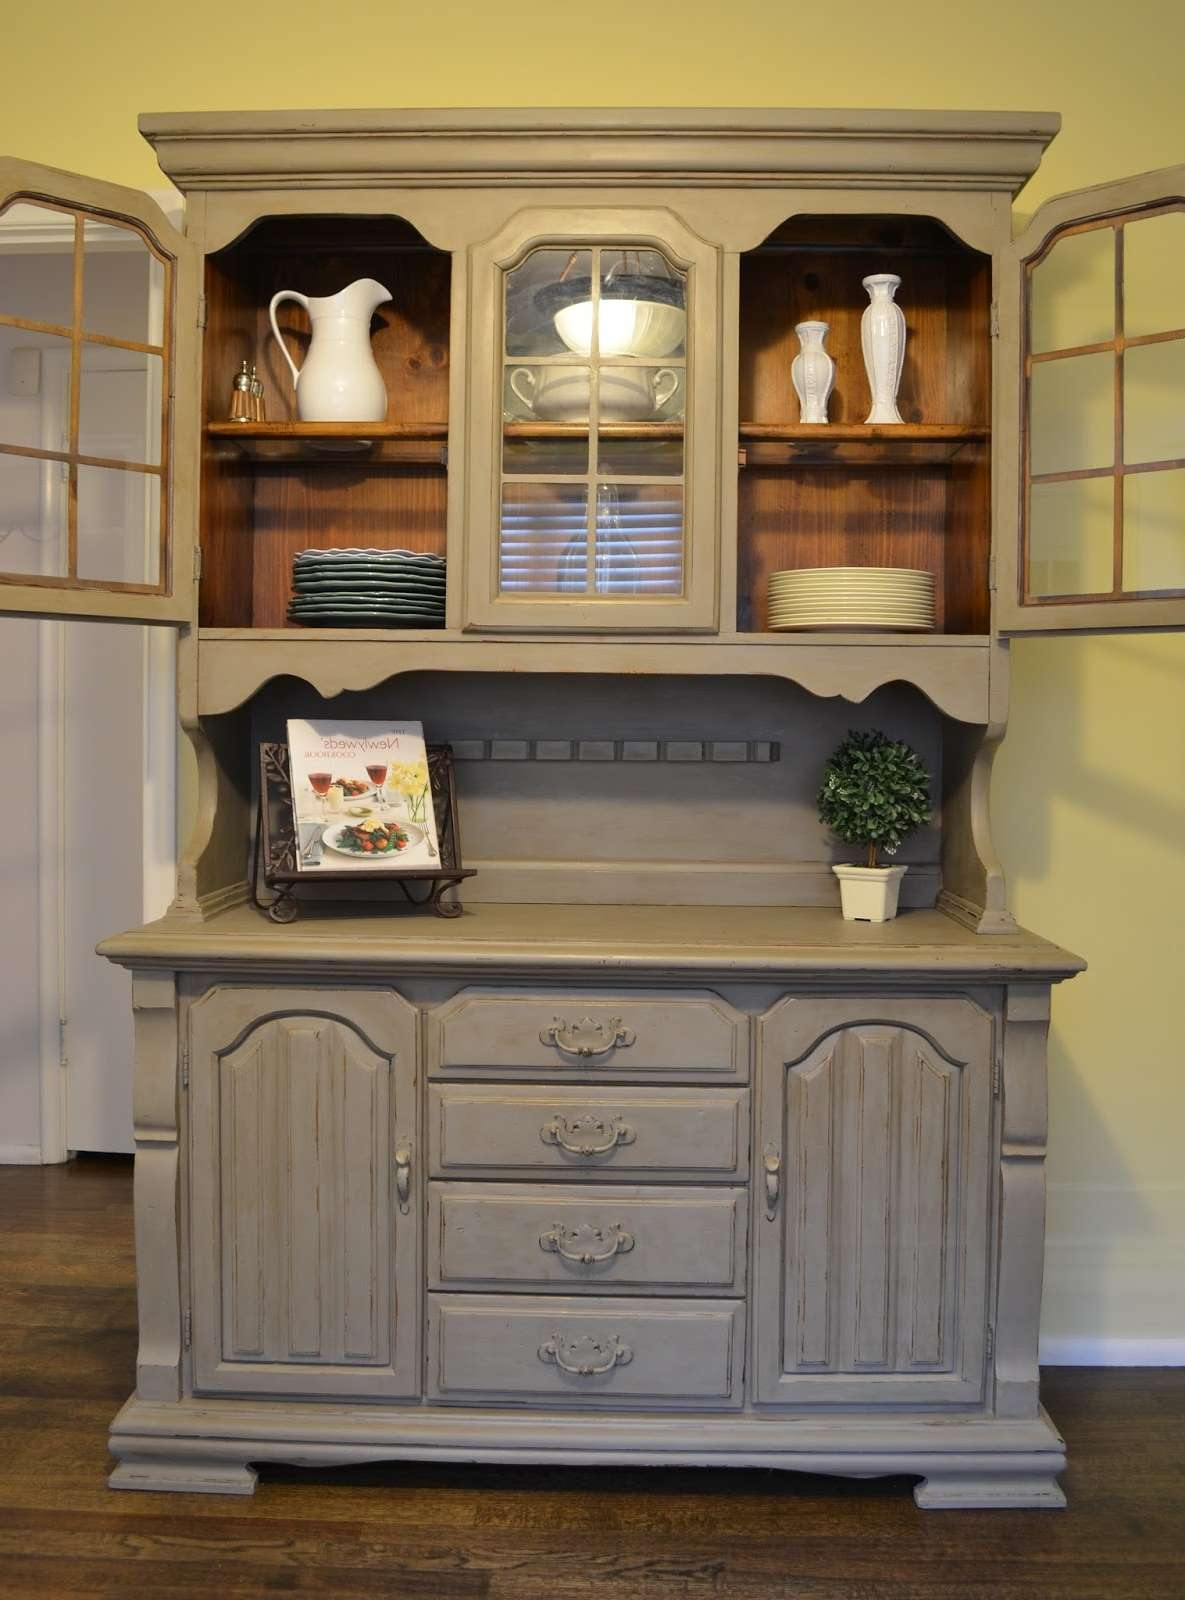 Kitchen Cabinet : Buffet Sideboard Furniture Cheap Furniture China With Cheap Sideboards Cabinets (View 13 of 20)